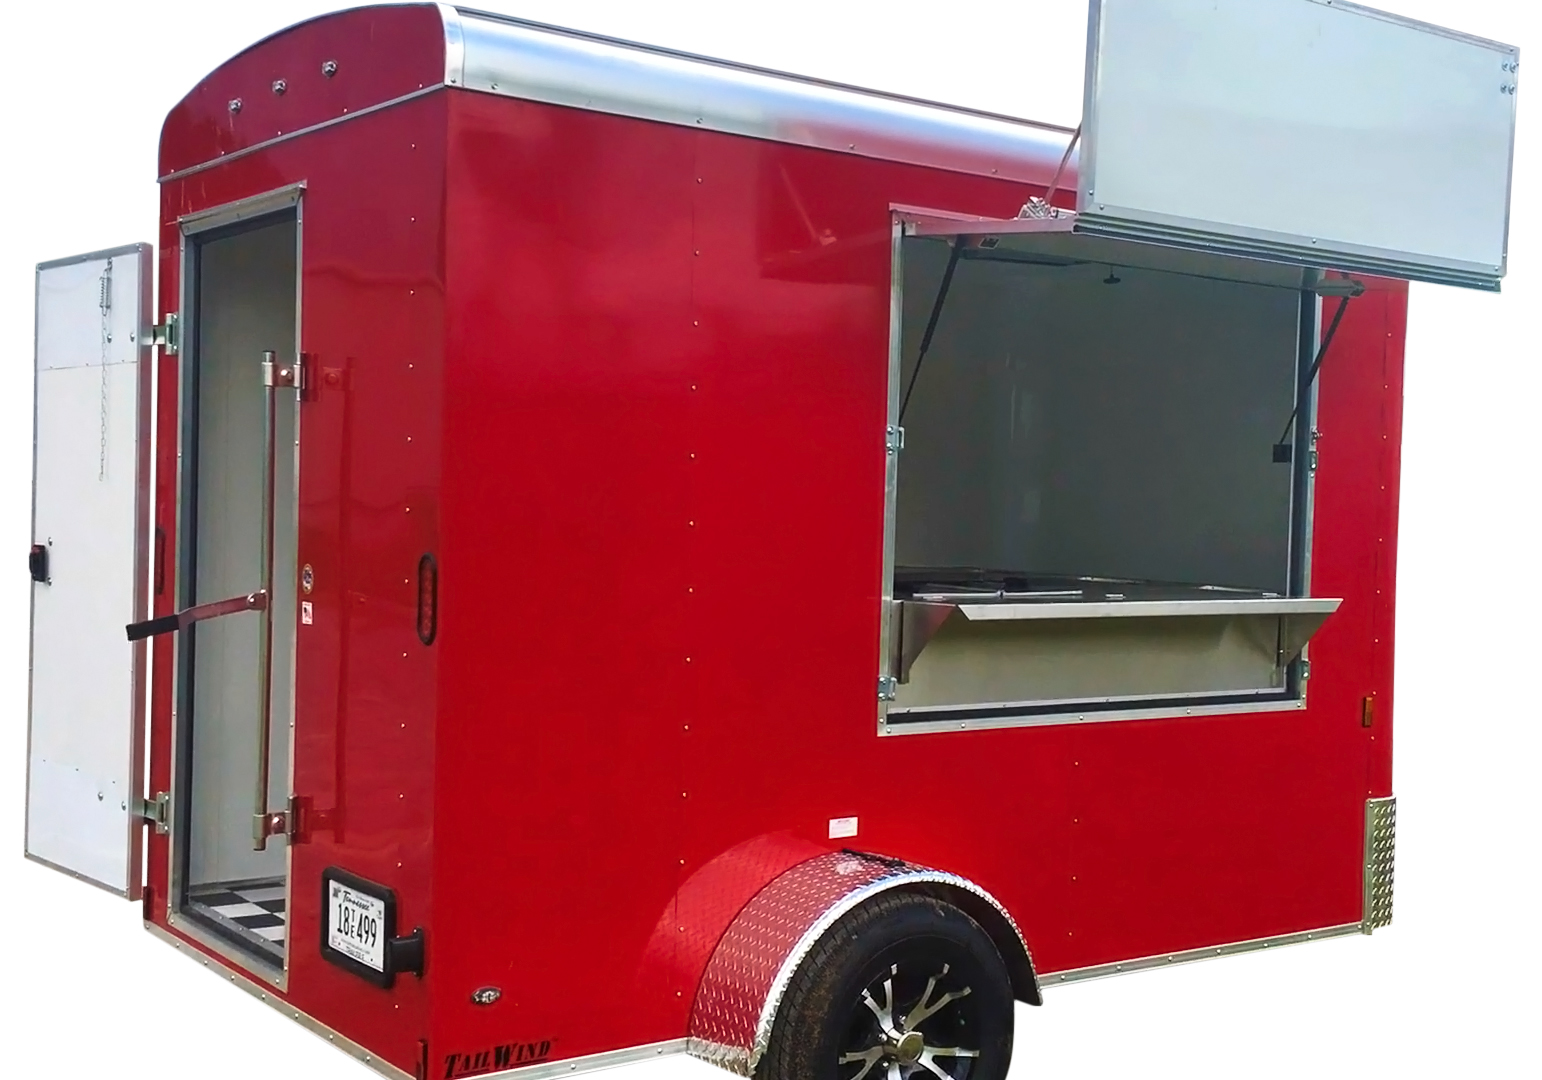 Fine Hot Dog Carts For Sale Stand King Concession Trailer Wiring Cloud Geisbieswglorg